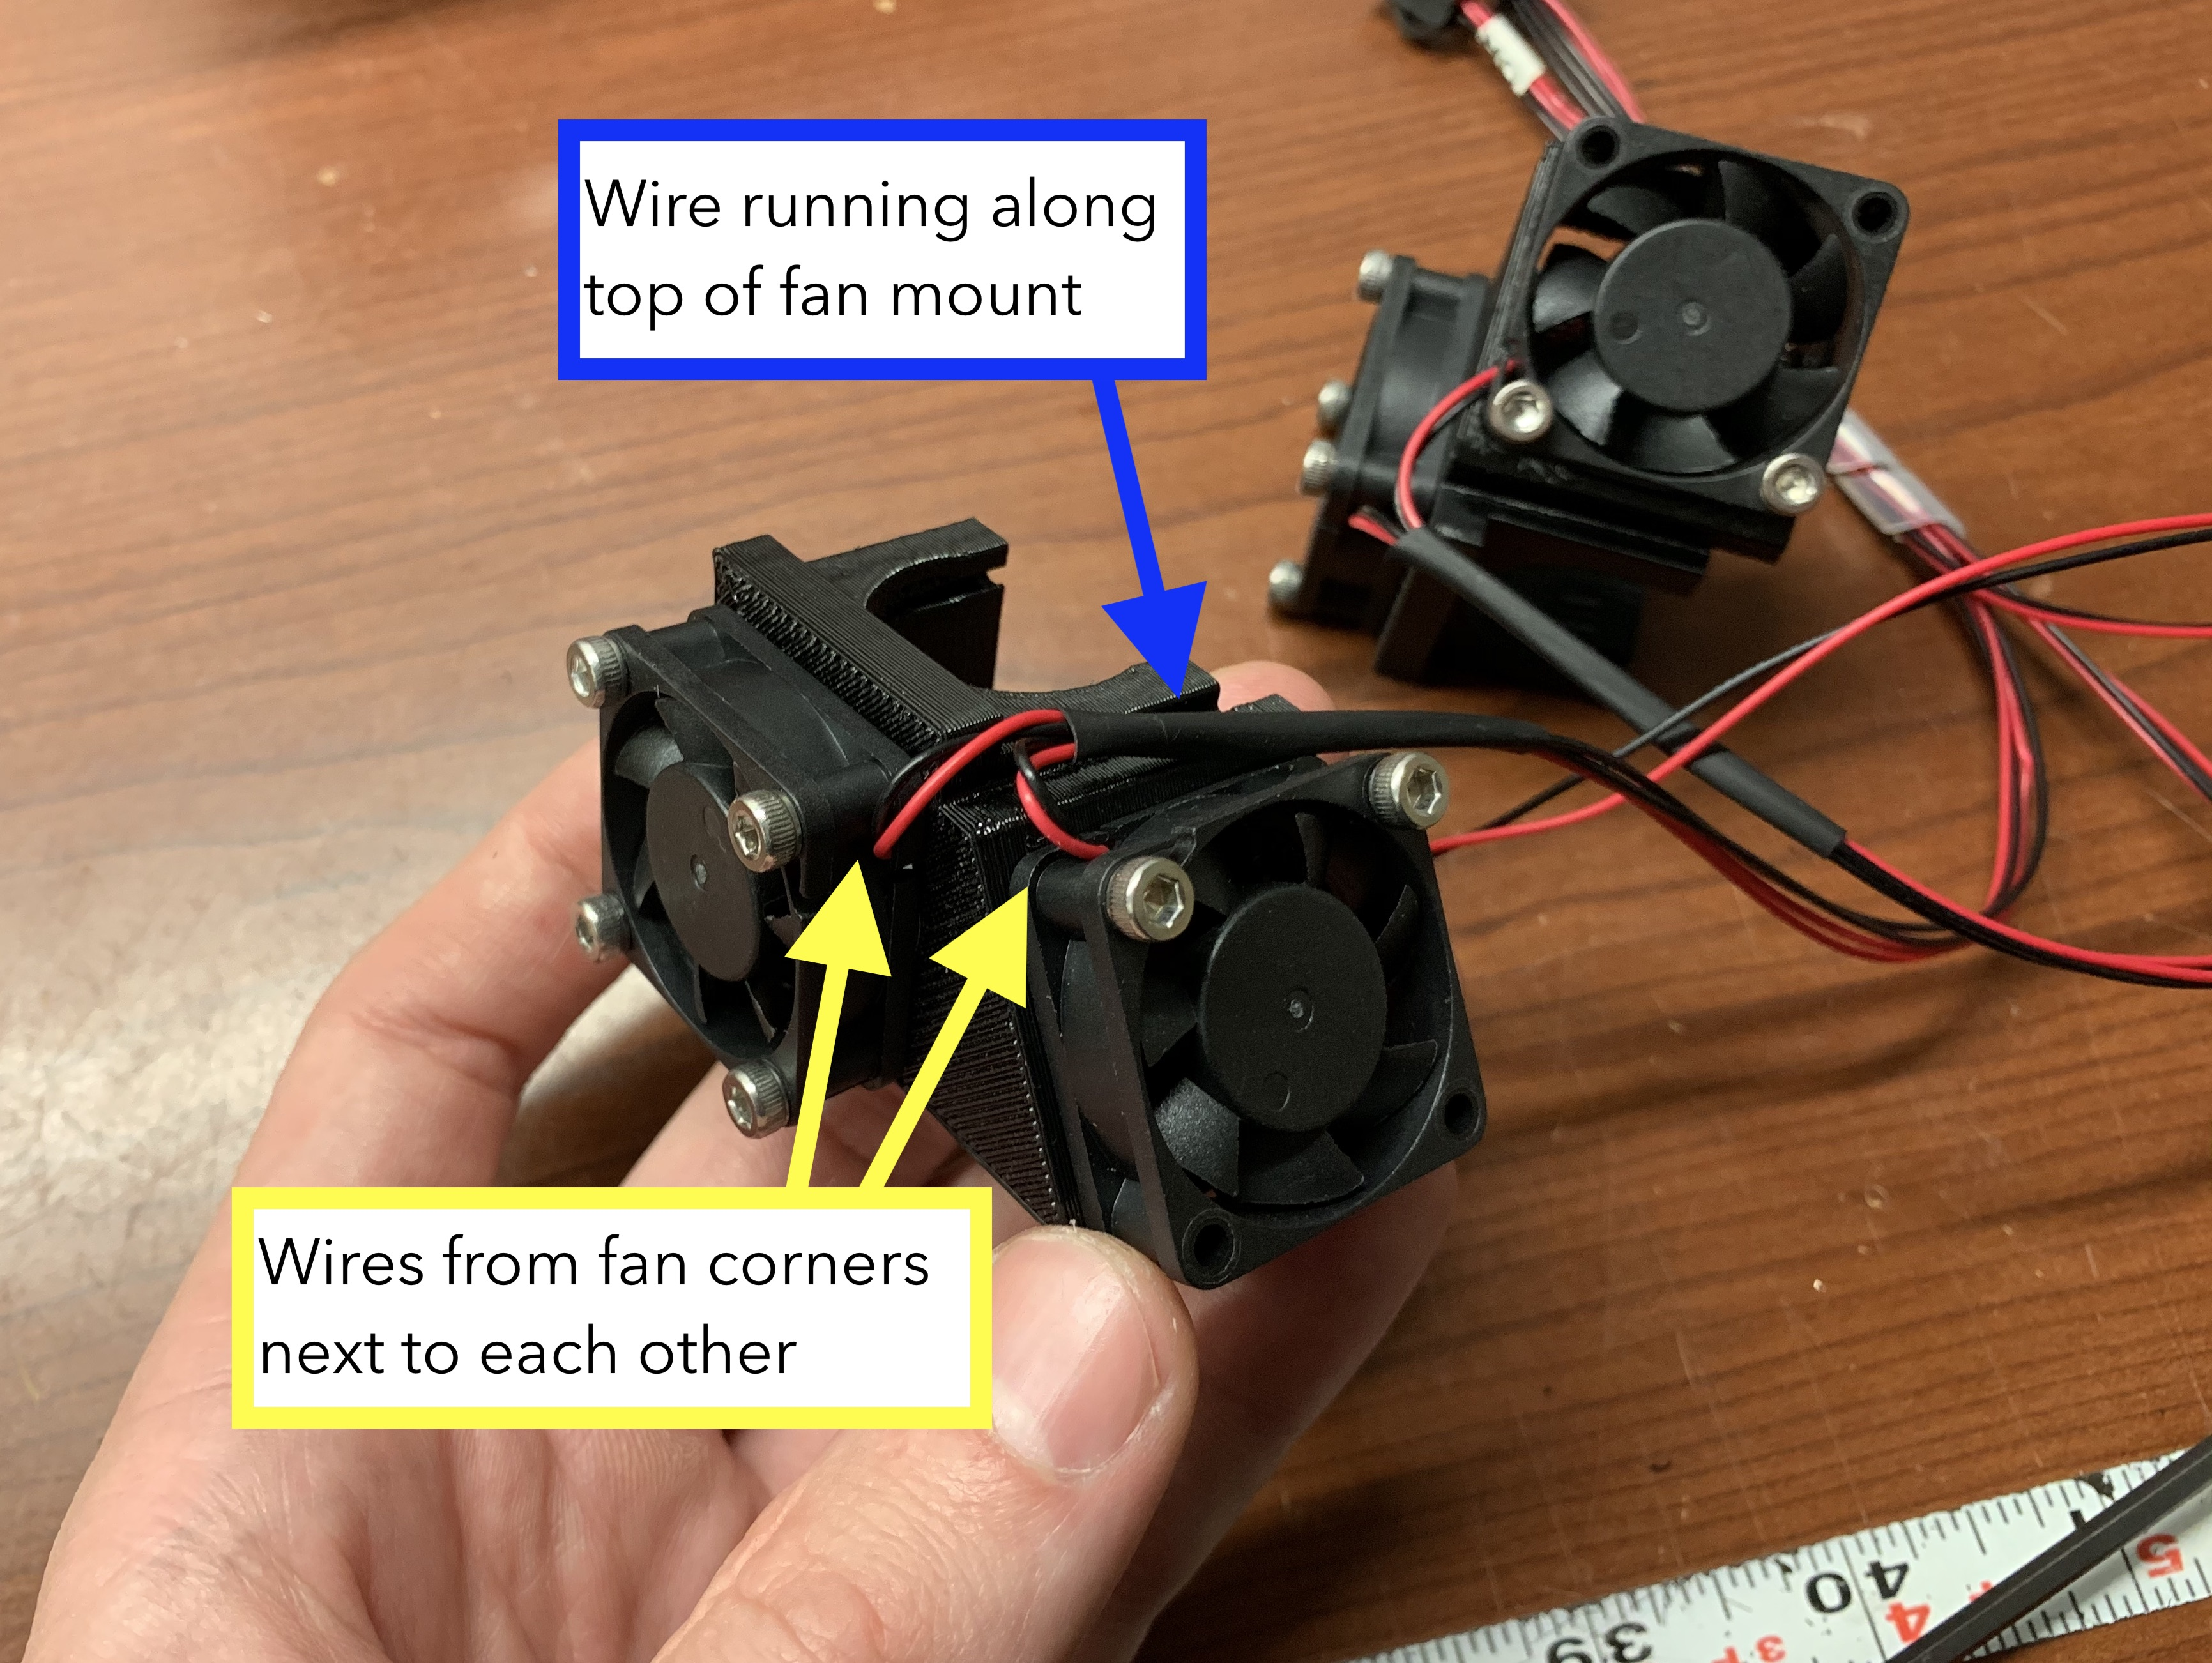 Fan_wire_corners_and_positioning.jpg